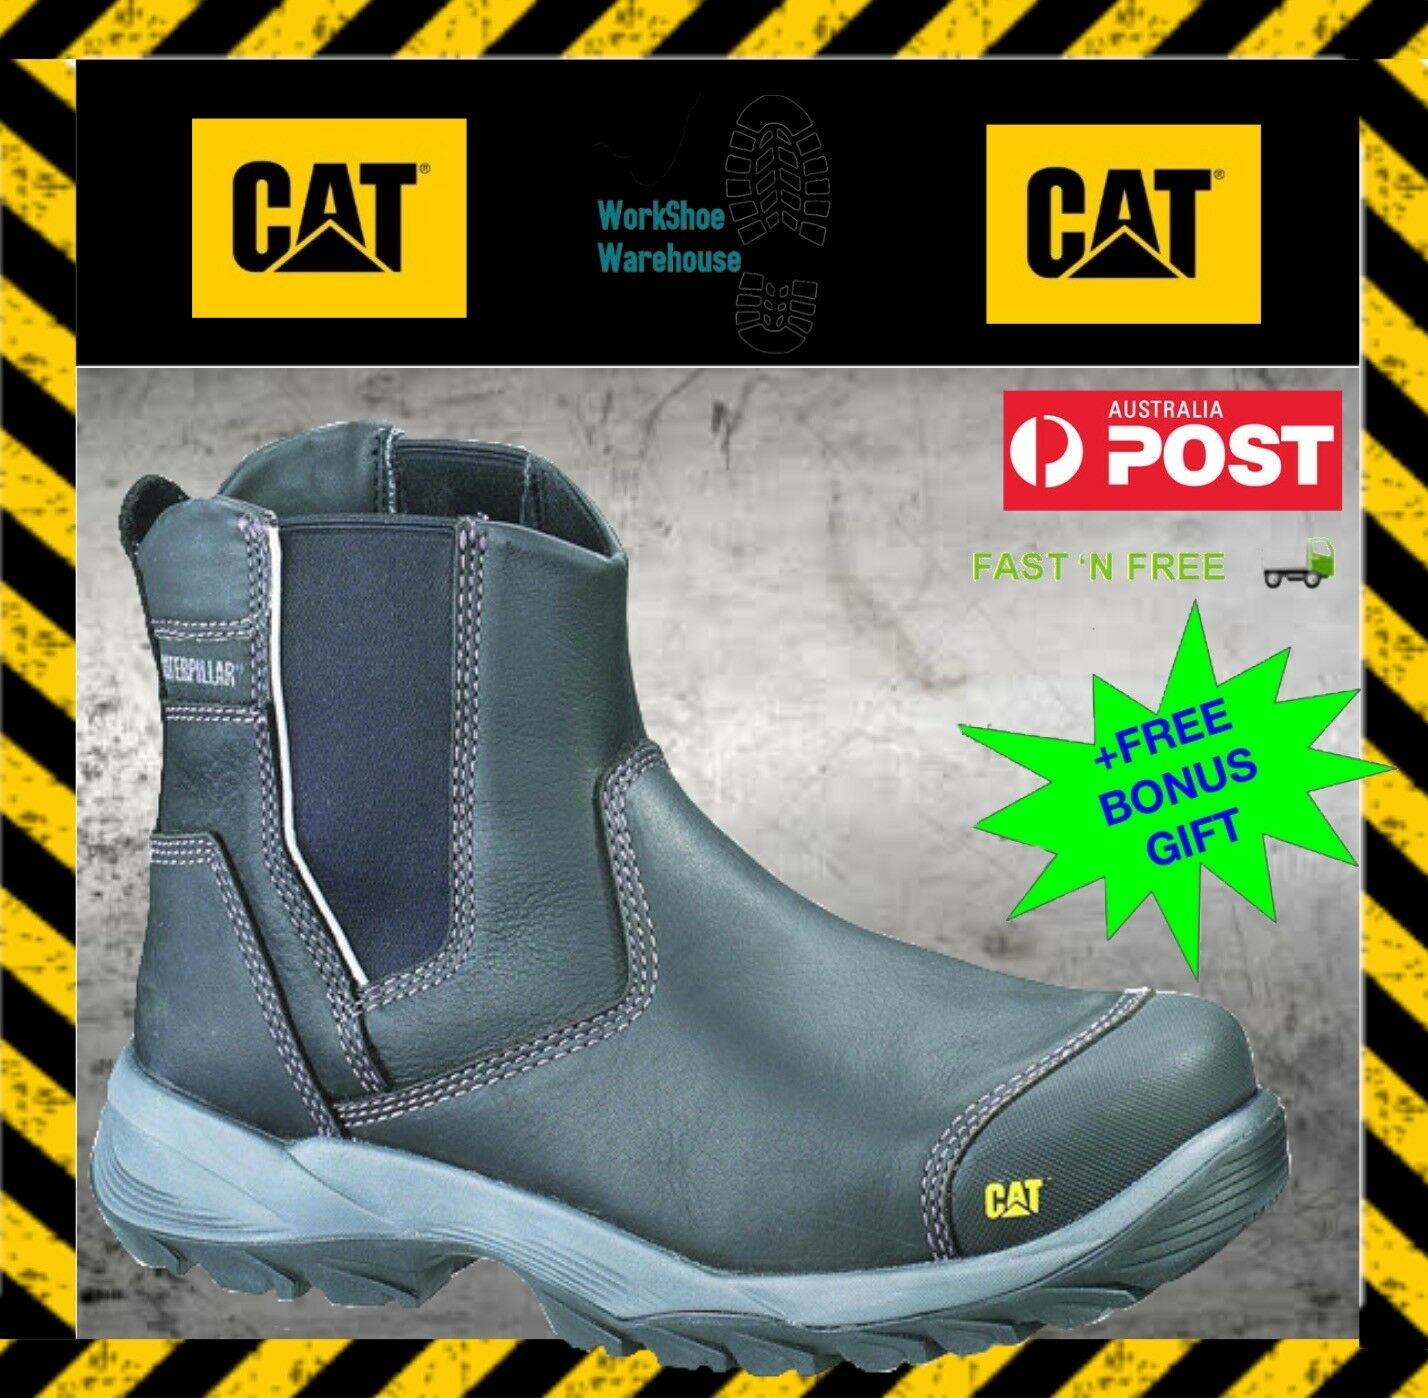 Caterpillar CAT Propane Men's Steel Toe Cap Black Safety Work Boots